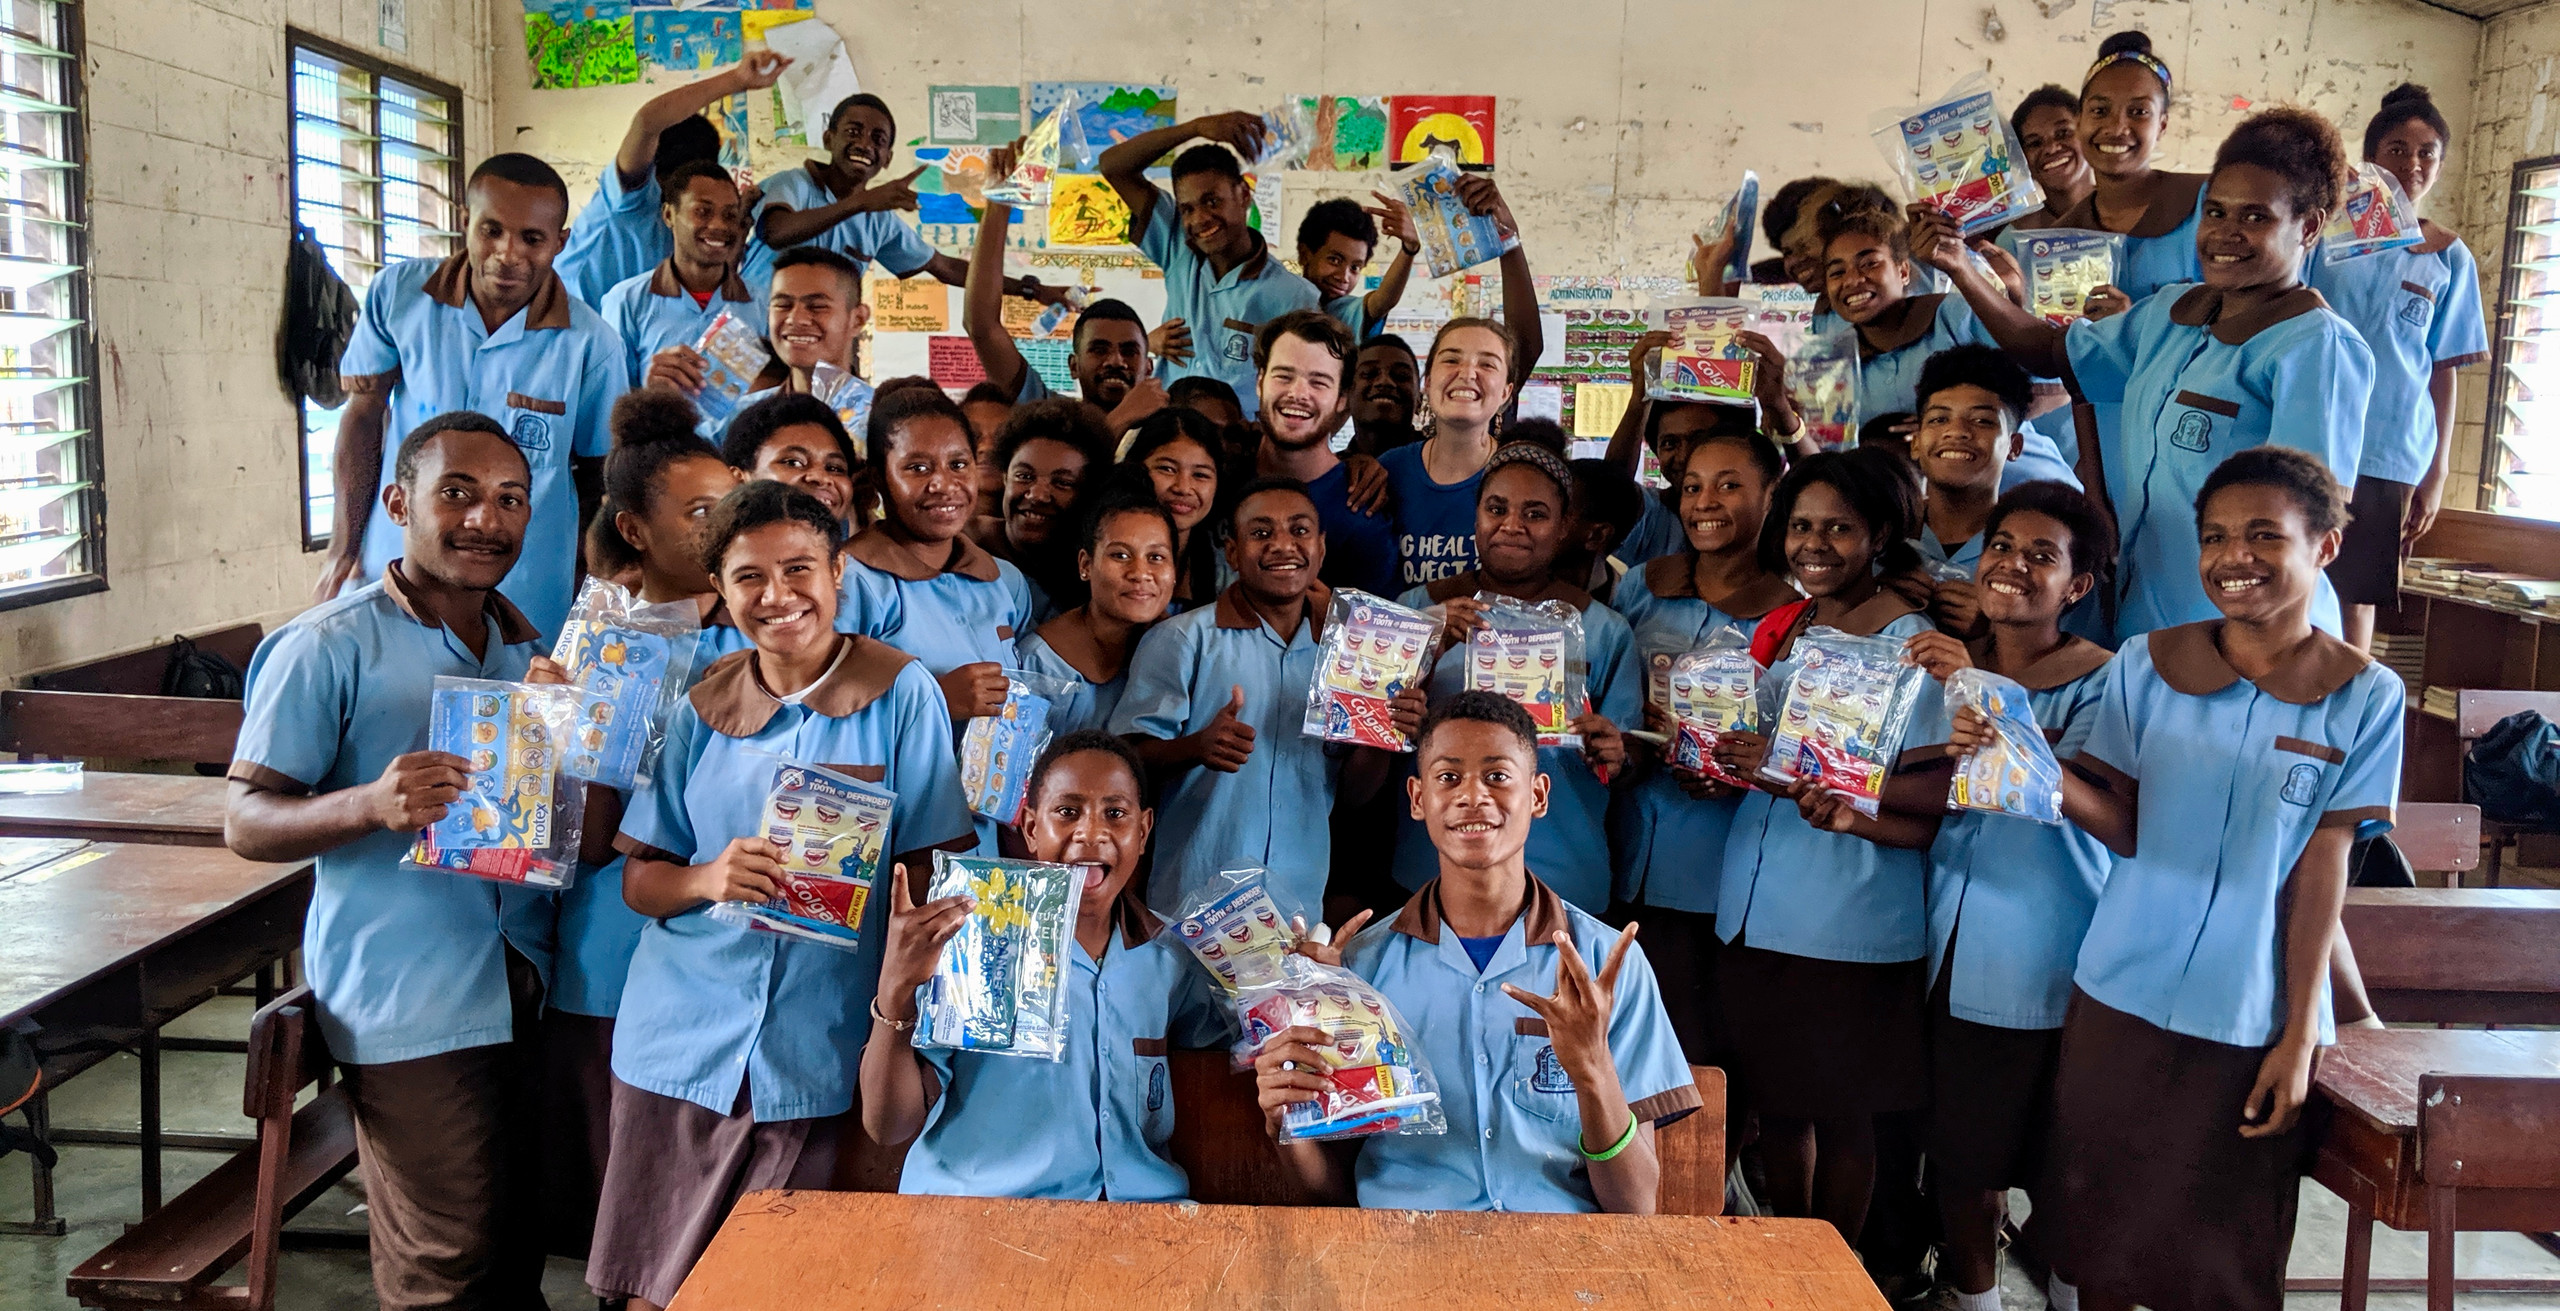 General Health/Hygiene station and kids from St Johns Primary School with the Dental Kits donated by Colgate.